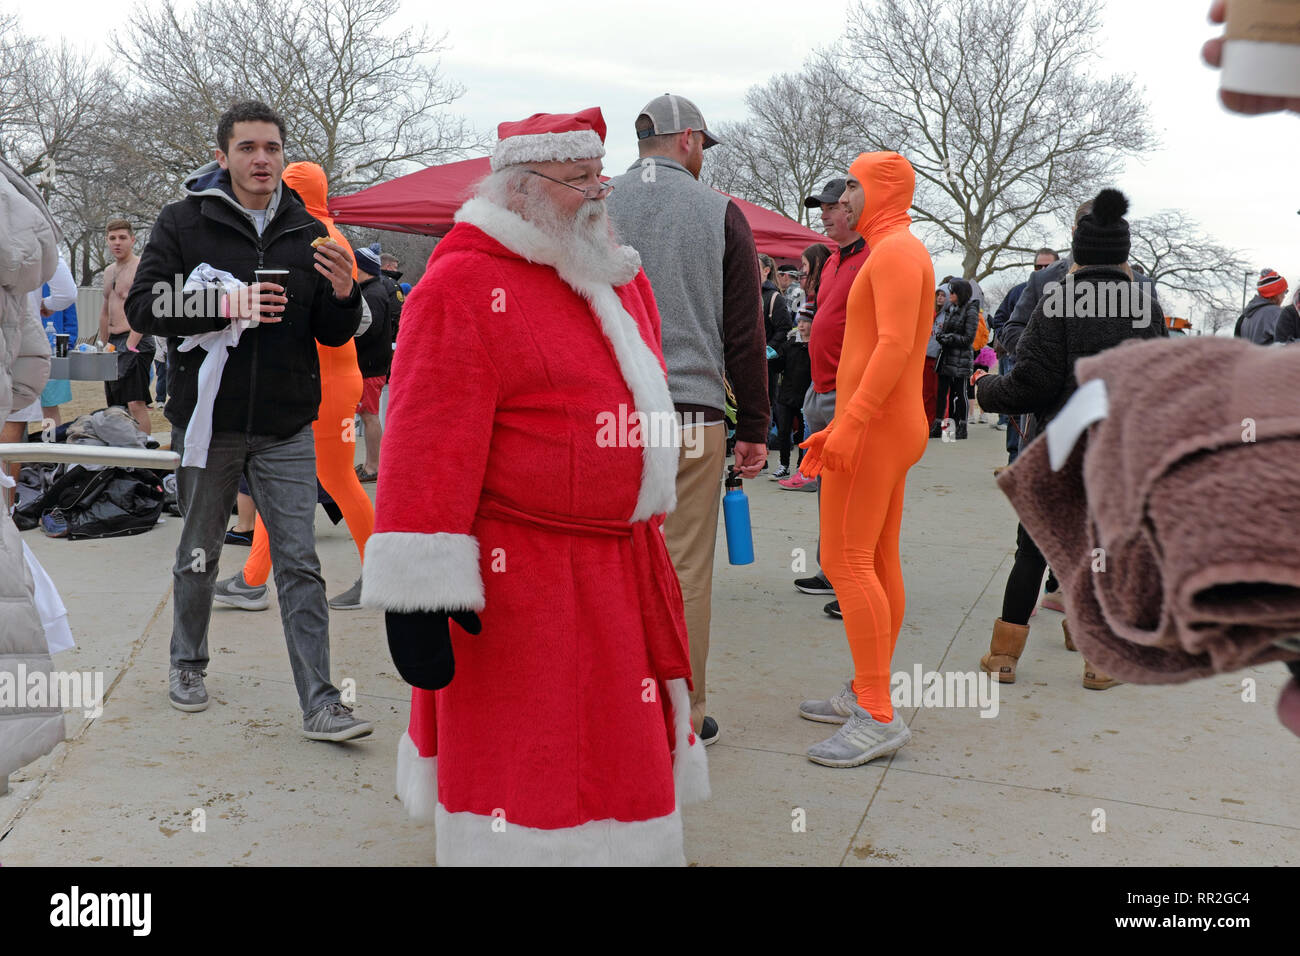 Cleveland, Ohio, USA.  24th Feb, 2019.  Santa makes his way through the crowd of fellow Polar Plunge participants at Edgewater Park in Cleveland, Ohio, USA.  Over 400 participants braved the elements by taking a dip in the ice-laden shore waters of Lake Erie.  The fun annual event encourages people to dress in costumes as they raise money for the Special Olympics.  Credit: Mark Kanning/Alamy Live News. - Stock Image